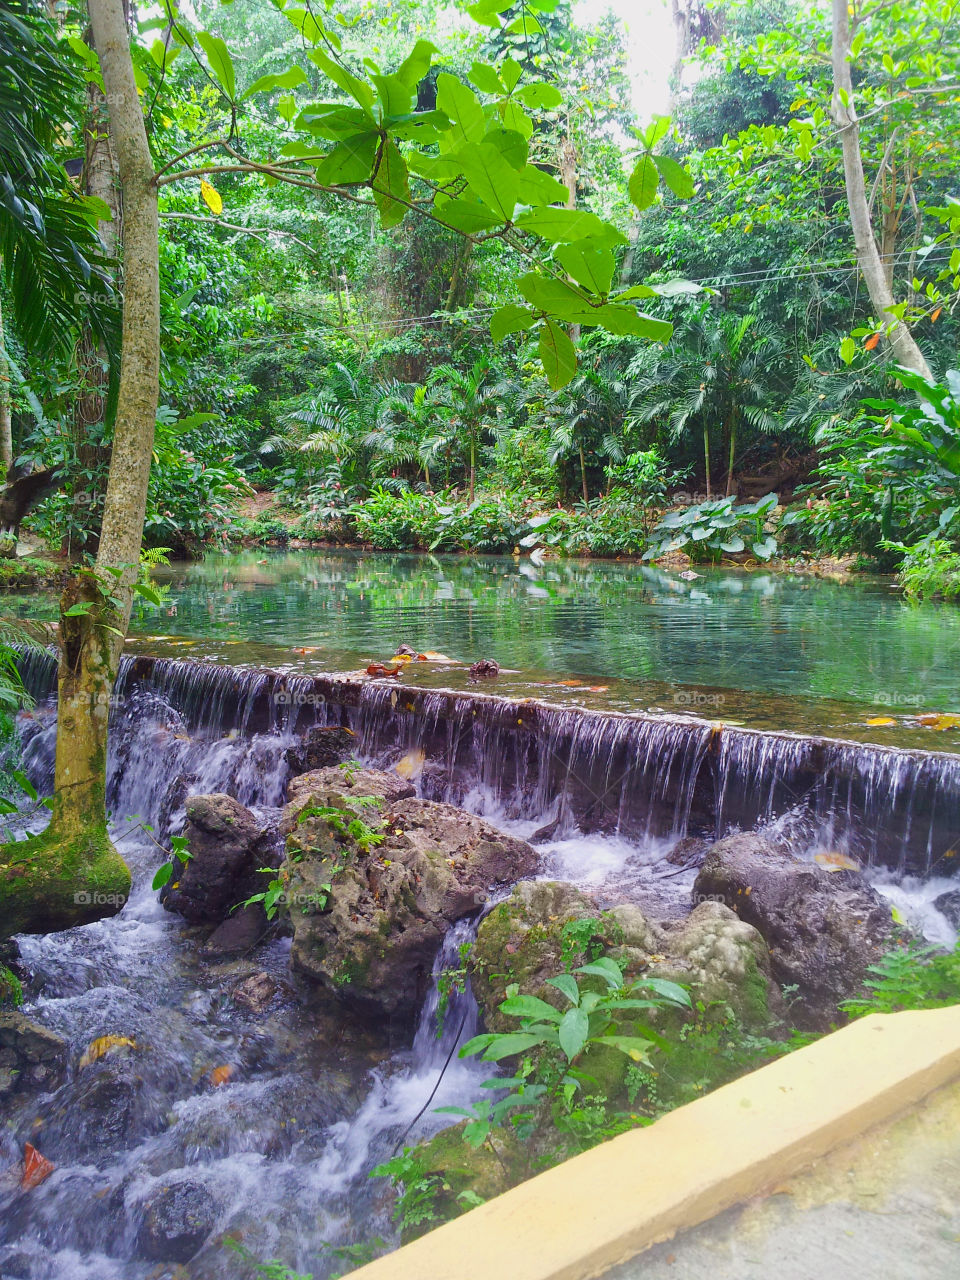 Rainforest waterfall